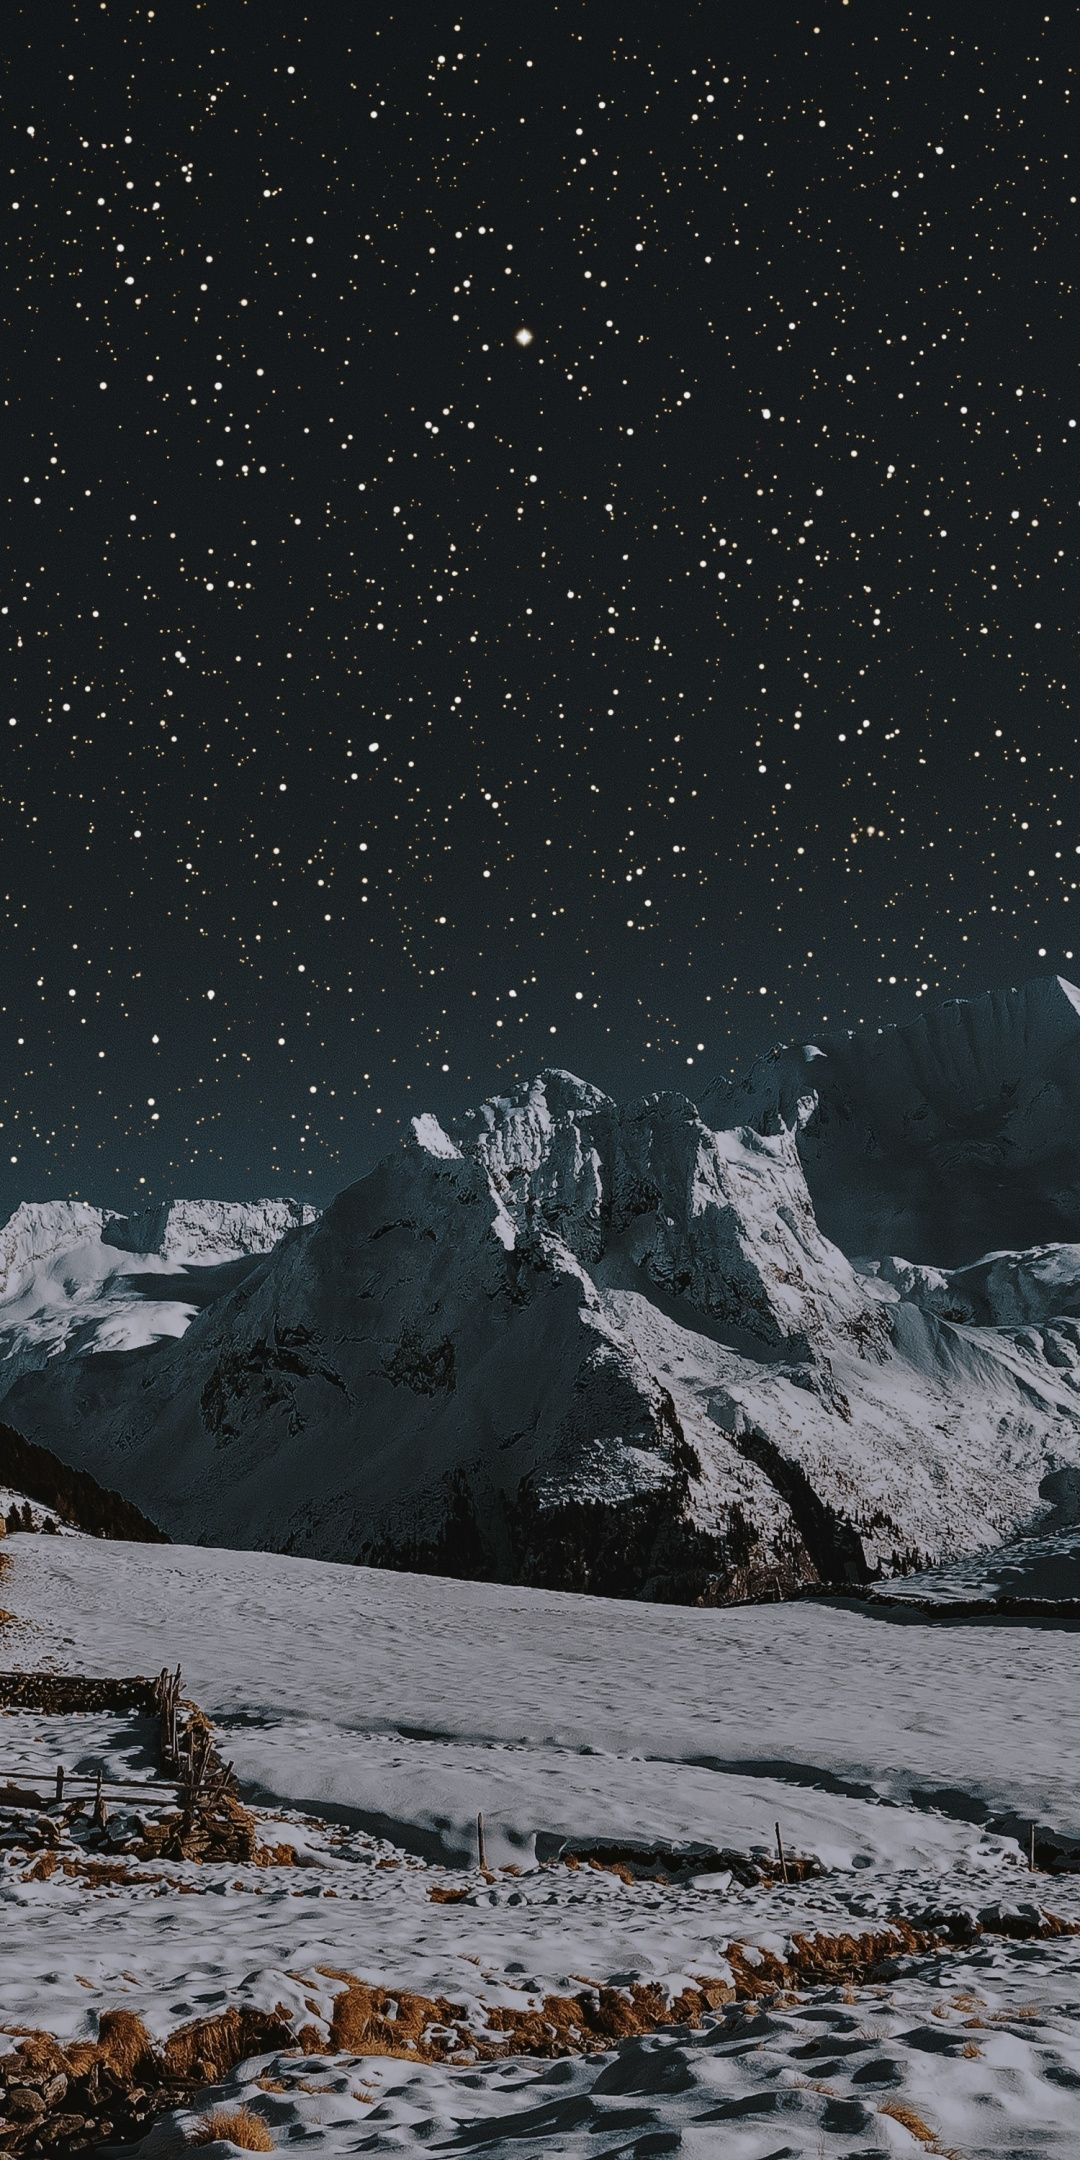 House Winter Landscape Mountains Night 1080x2160 Wallpaper Landscape Winter Landscape Wallpaper